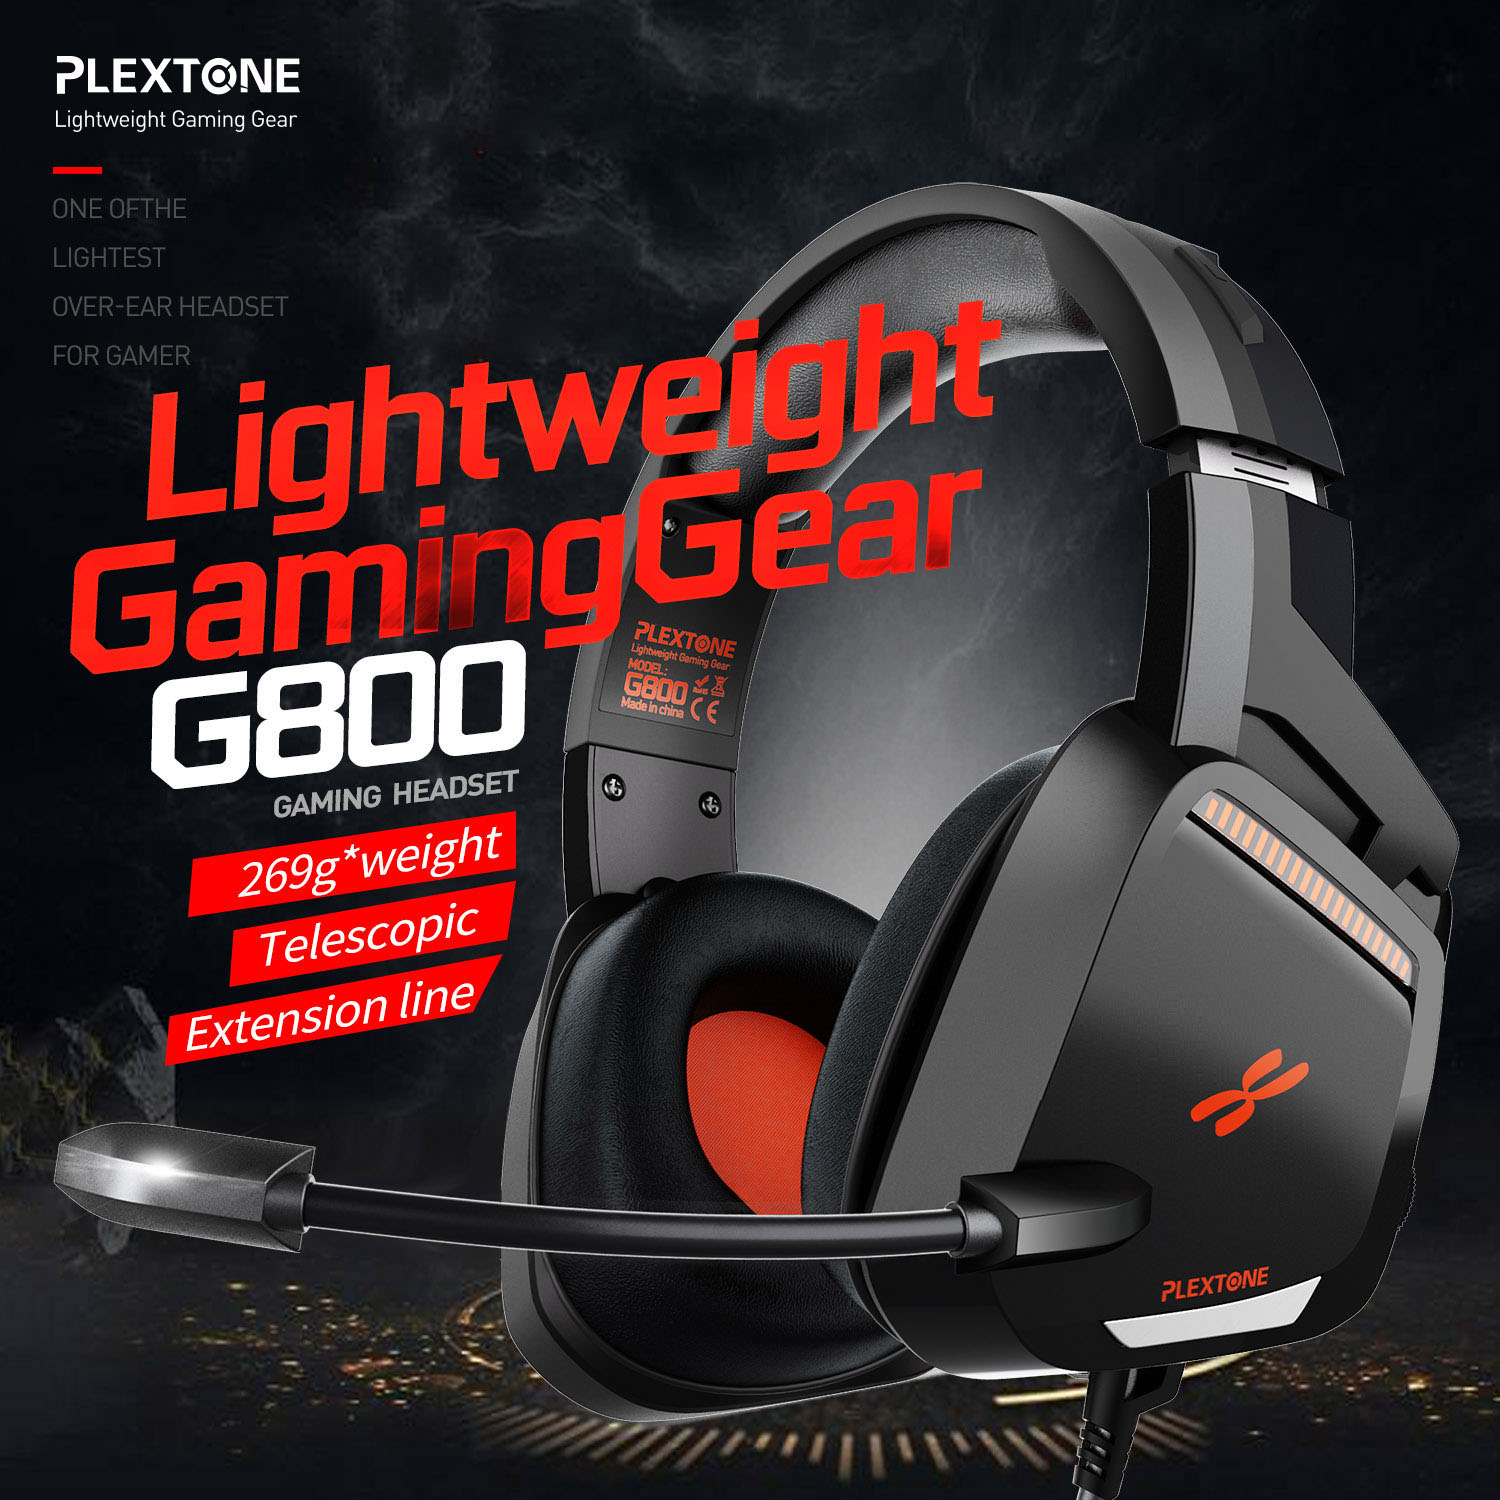 Plextone G800 Gaming Headset Headphones Over Ear Lightweight Headsets With Mic For Ps4 Pc Mobile Phone Headset Gamer Headphone Headset Aliexpress